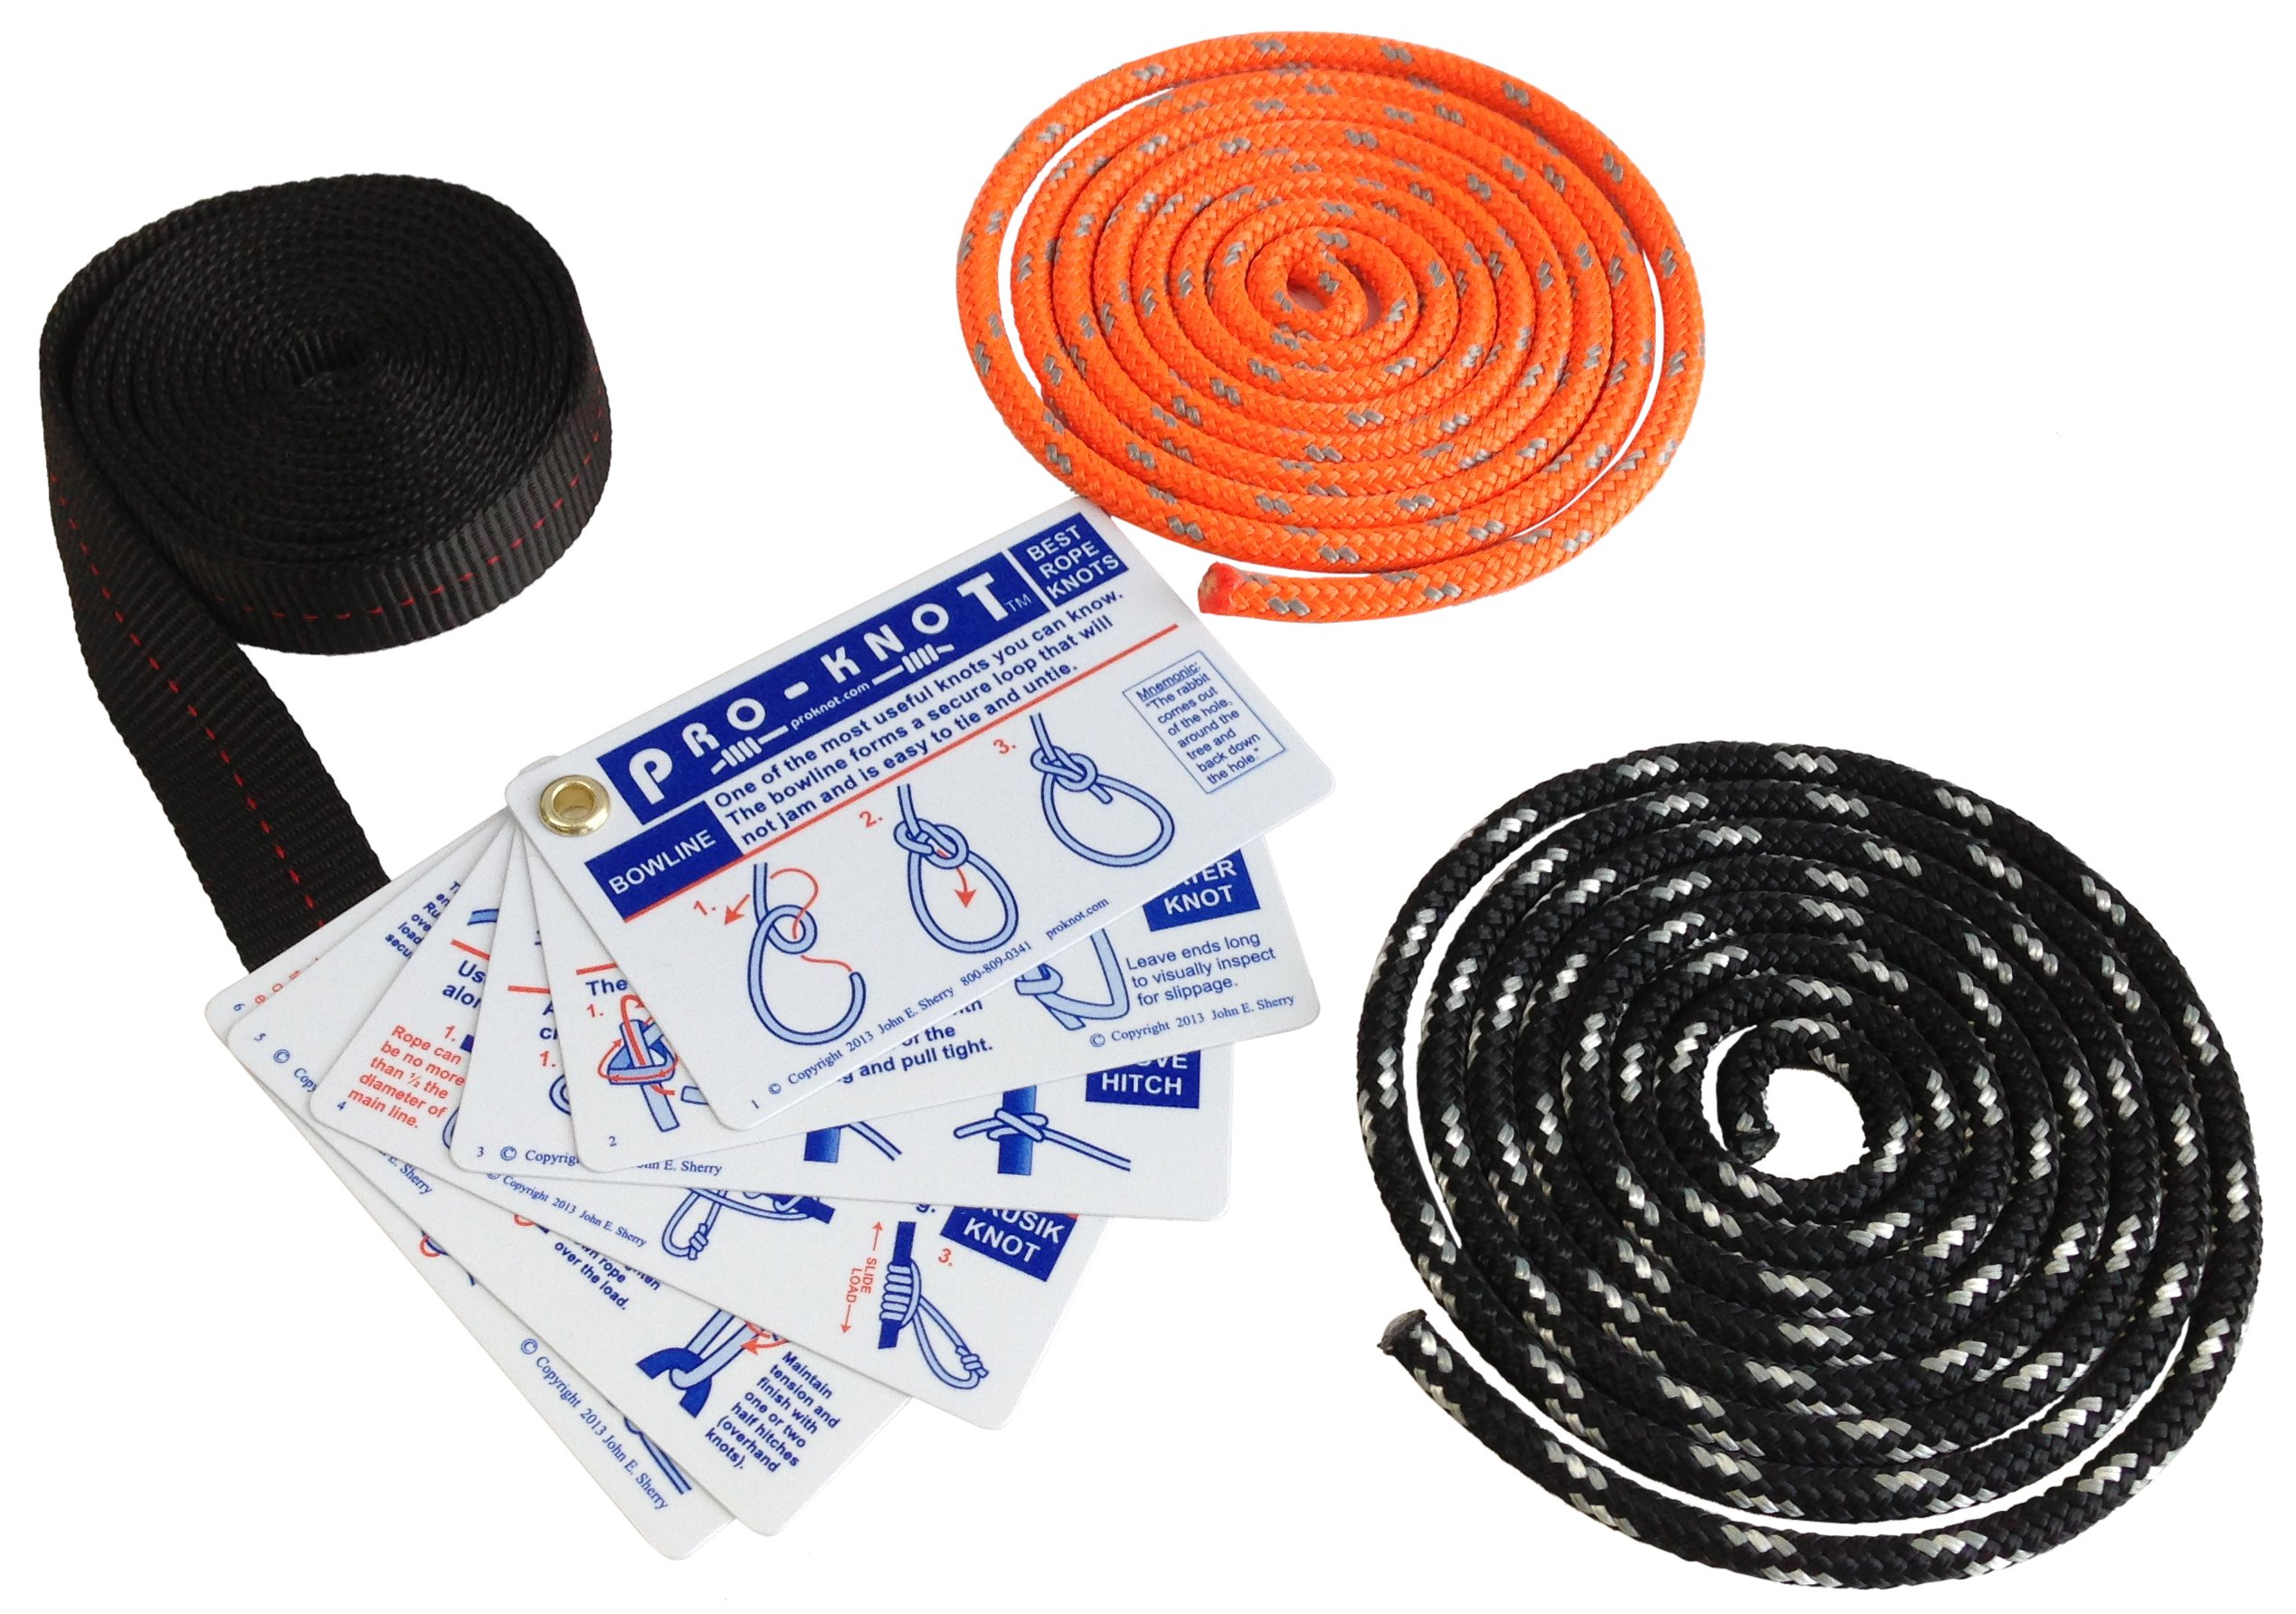 SGT KNOTS Knot Tying Kit - Learn How To Tie Knots Instruction Cards (17) Two (2) 6 feet Lengths of Double Braided Rope, and One (1) 6 foot Length of Nylon Webbing - Guide to Essential Knots